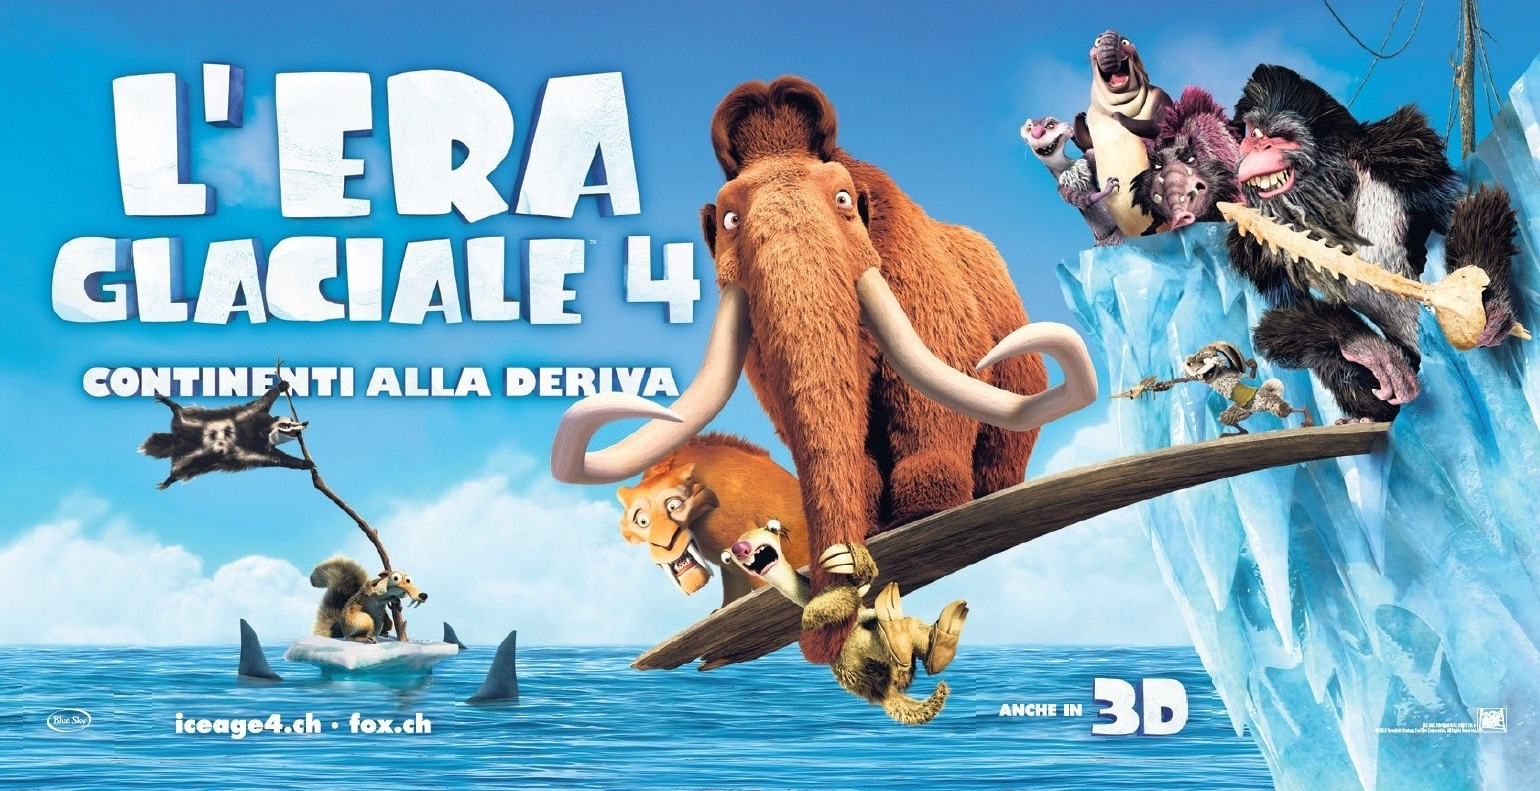 Ice Age 2009 3D Movie Free Download In Tamil